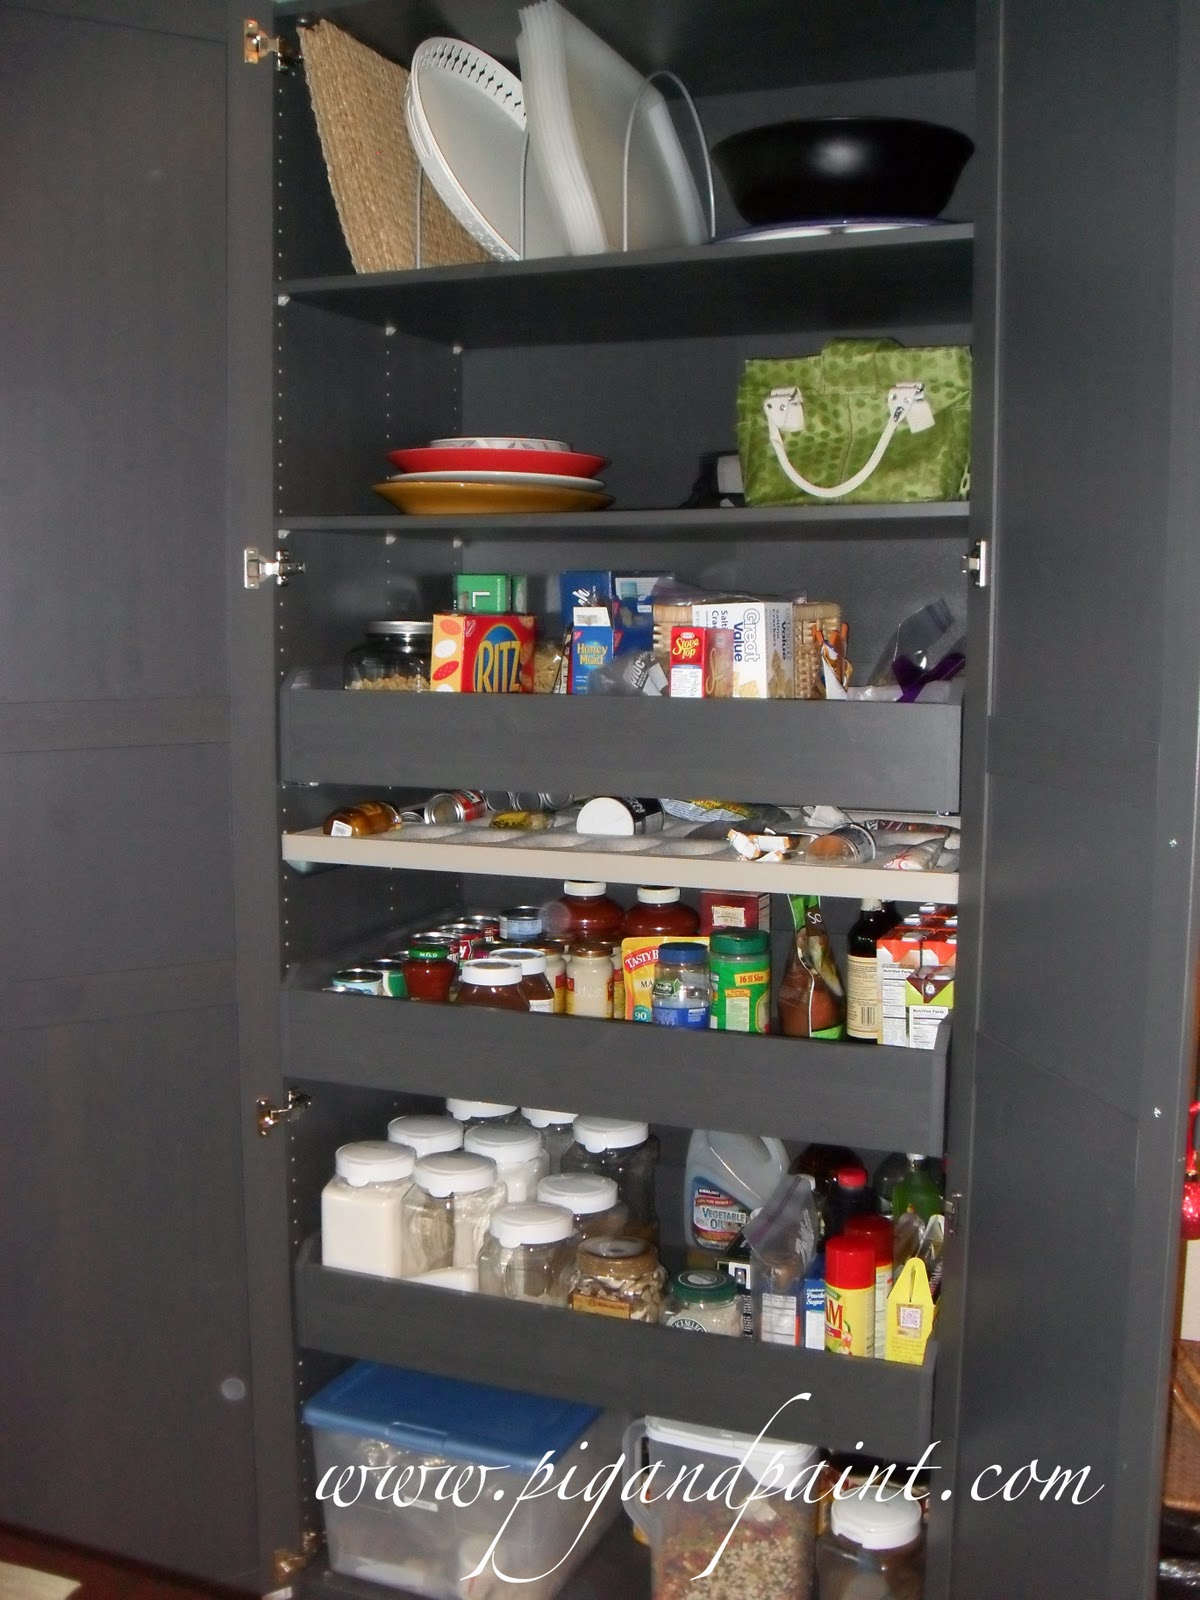 Pig and Paint: Why a Stand-Alone Pantry is a Great Alternative